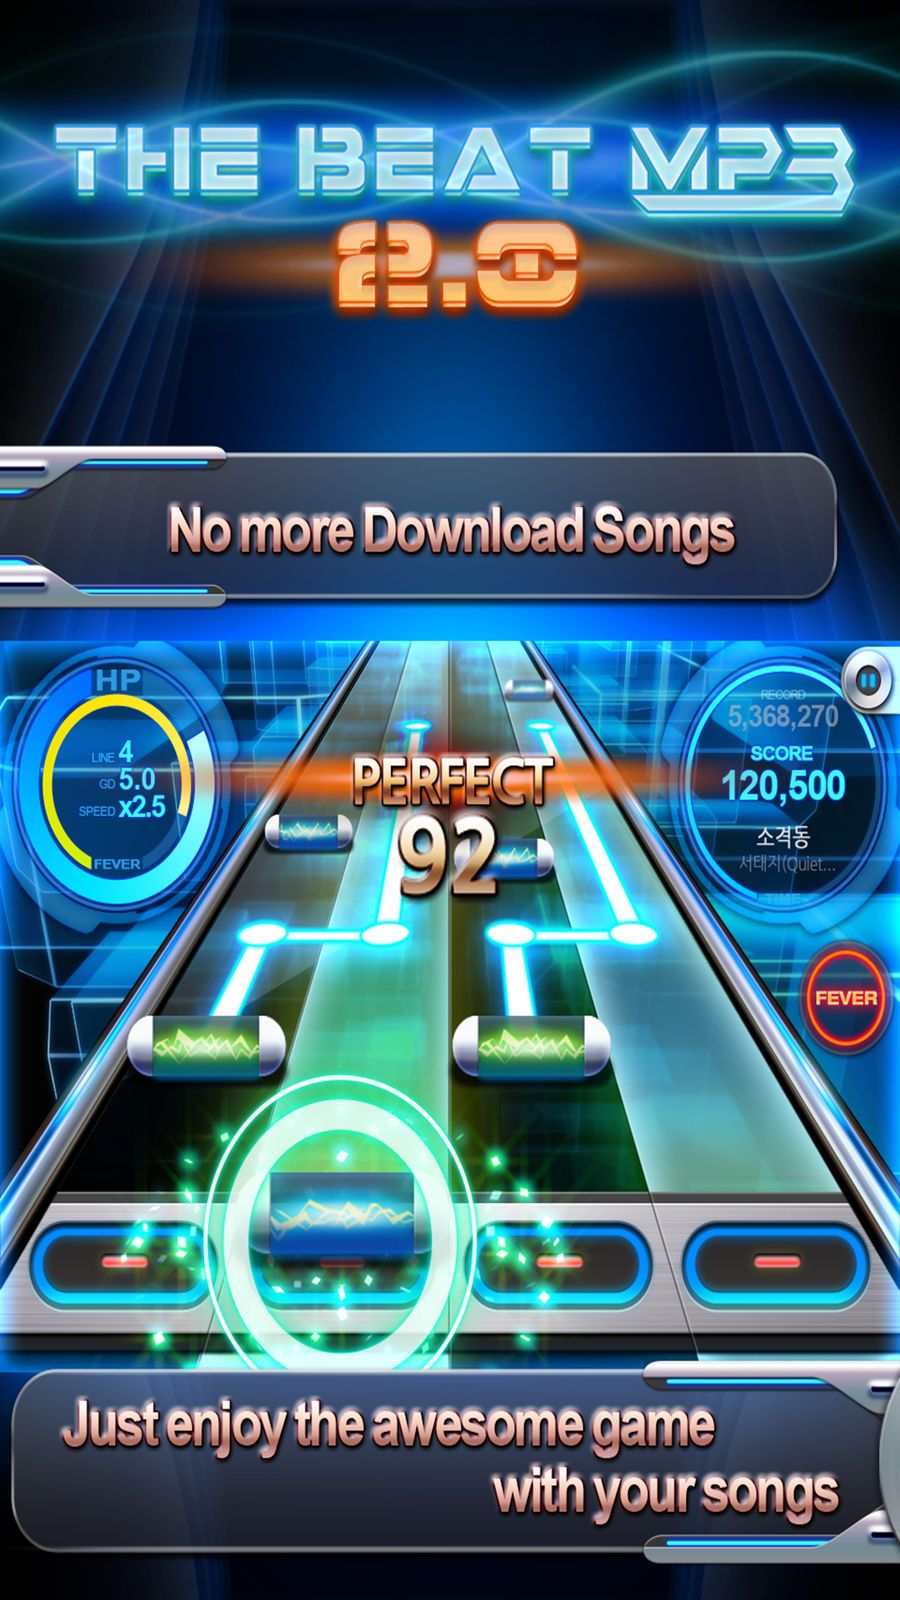 BEAT MP3 2.0 Rhythm Game GamesCREAPPTIVEMusicios